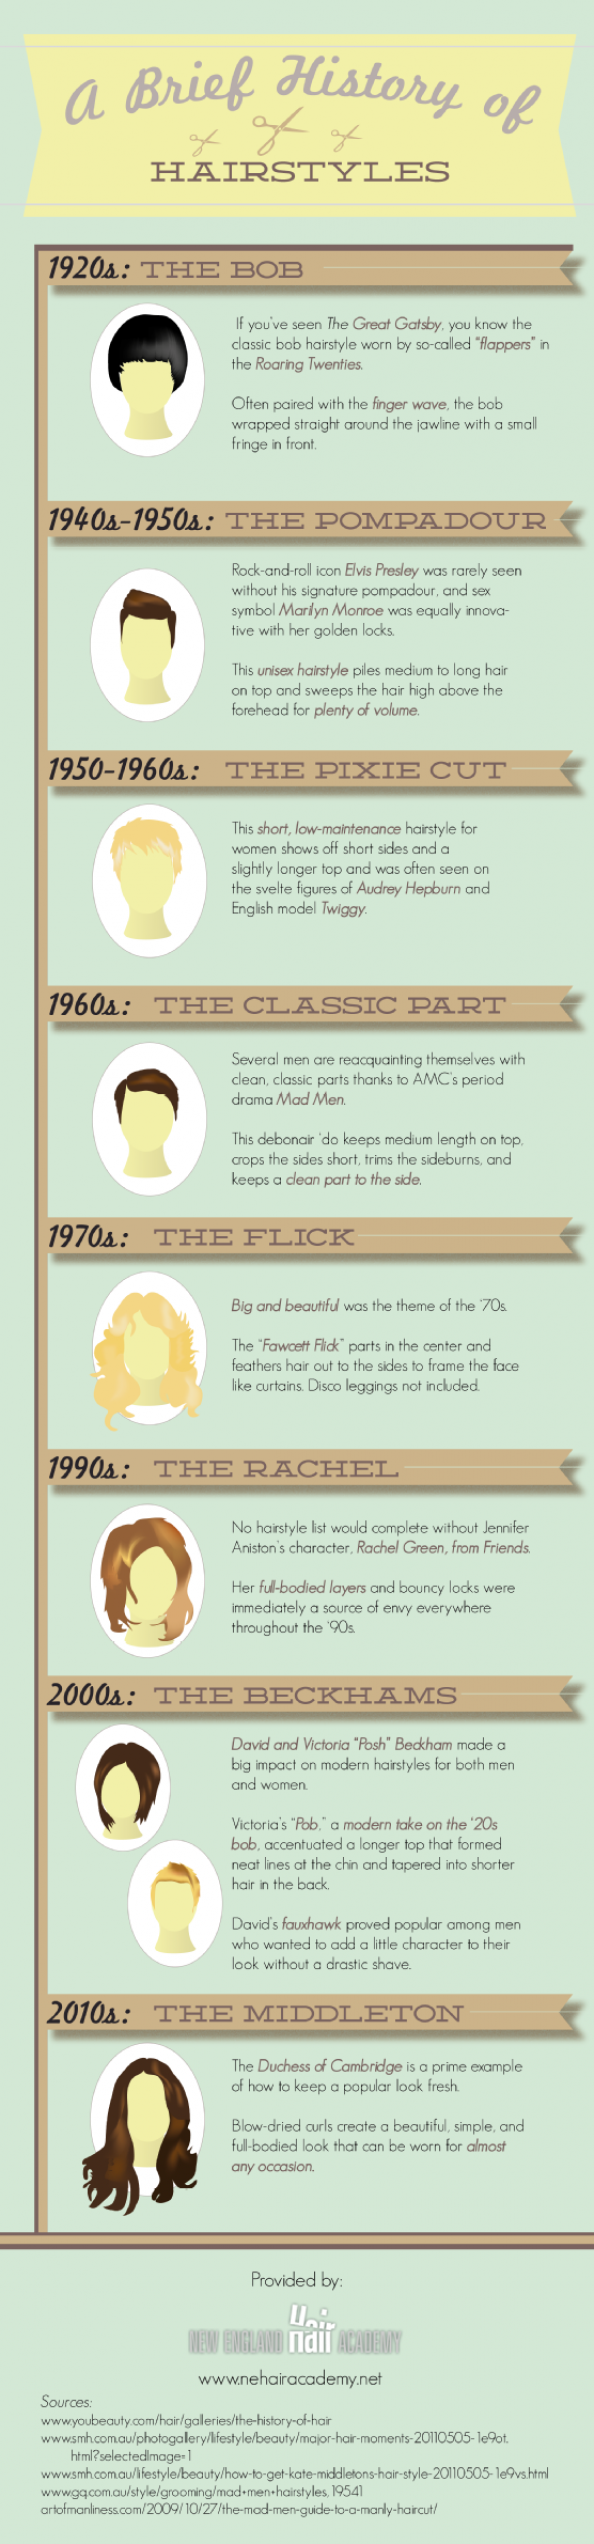 A Brief History of Hairstyles Infographic